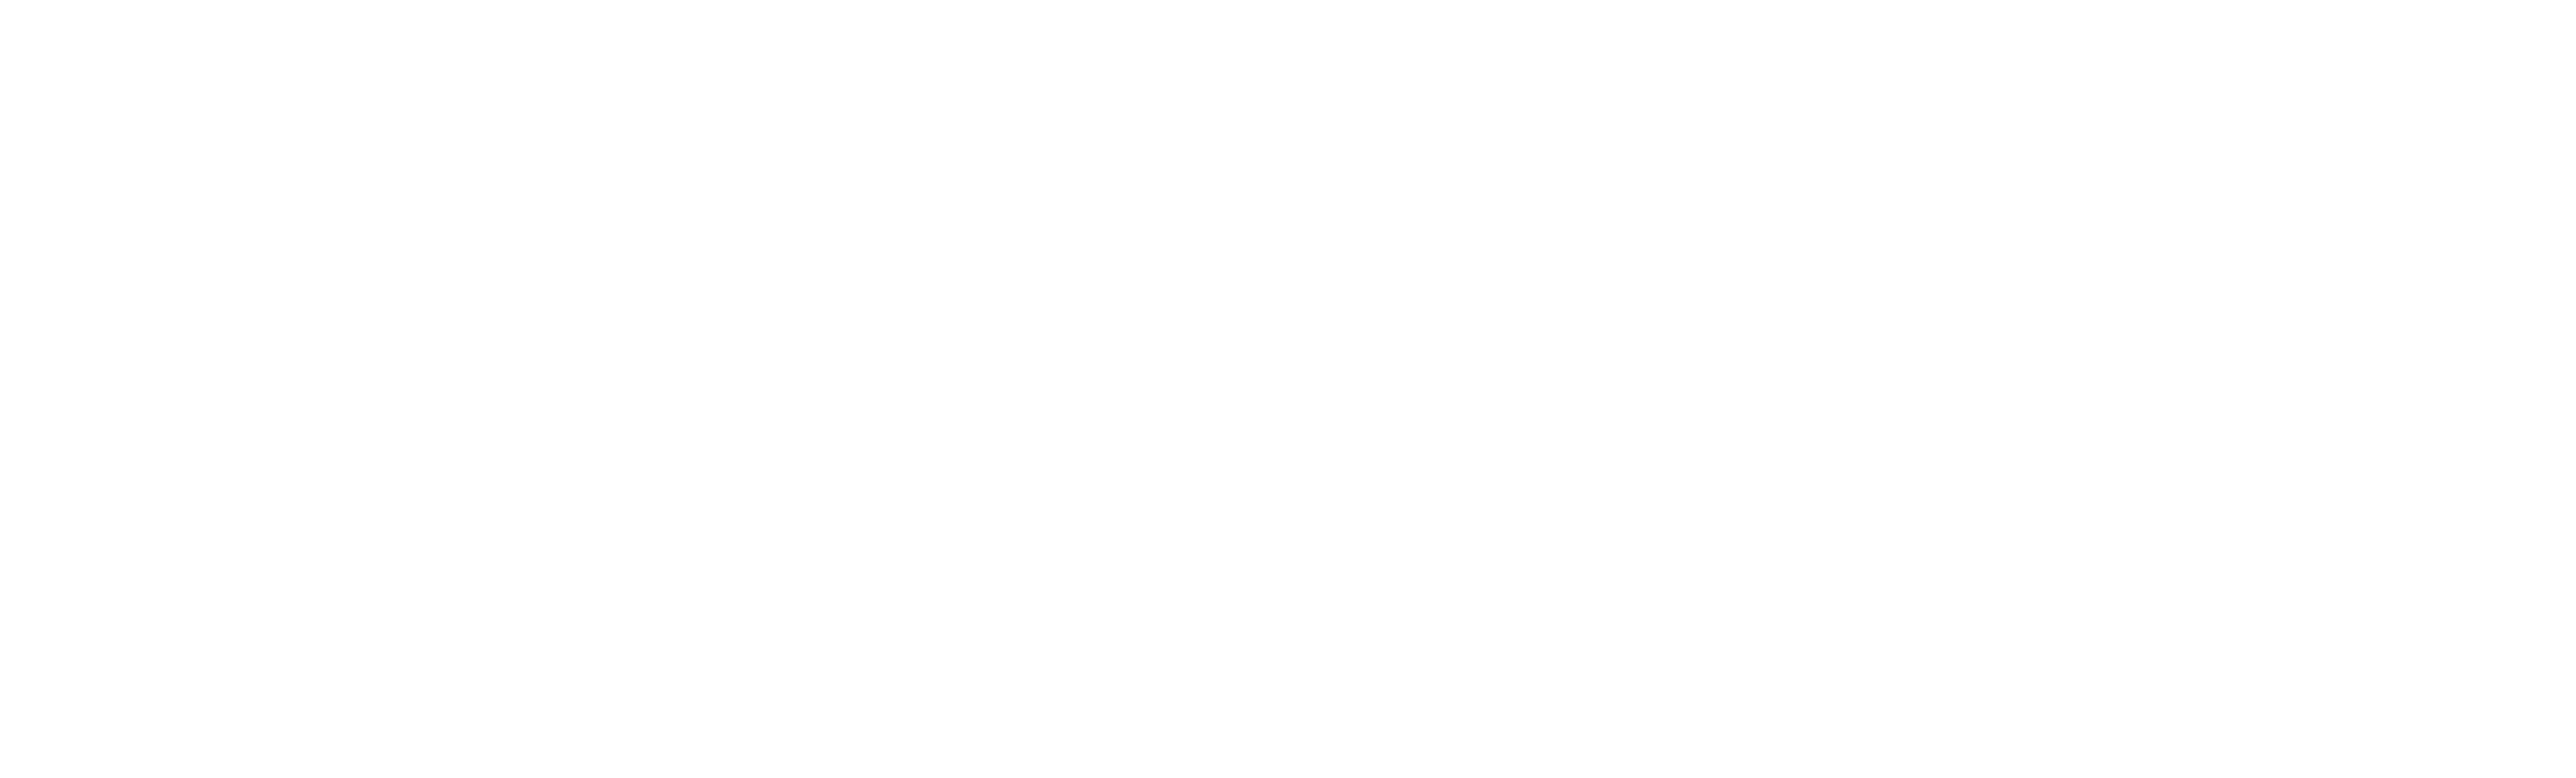 StiltSoft | Atlassian Gold Marketplace Partner - Apps for Atlassian Jira, Confluence, Bitbucket